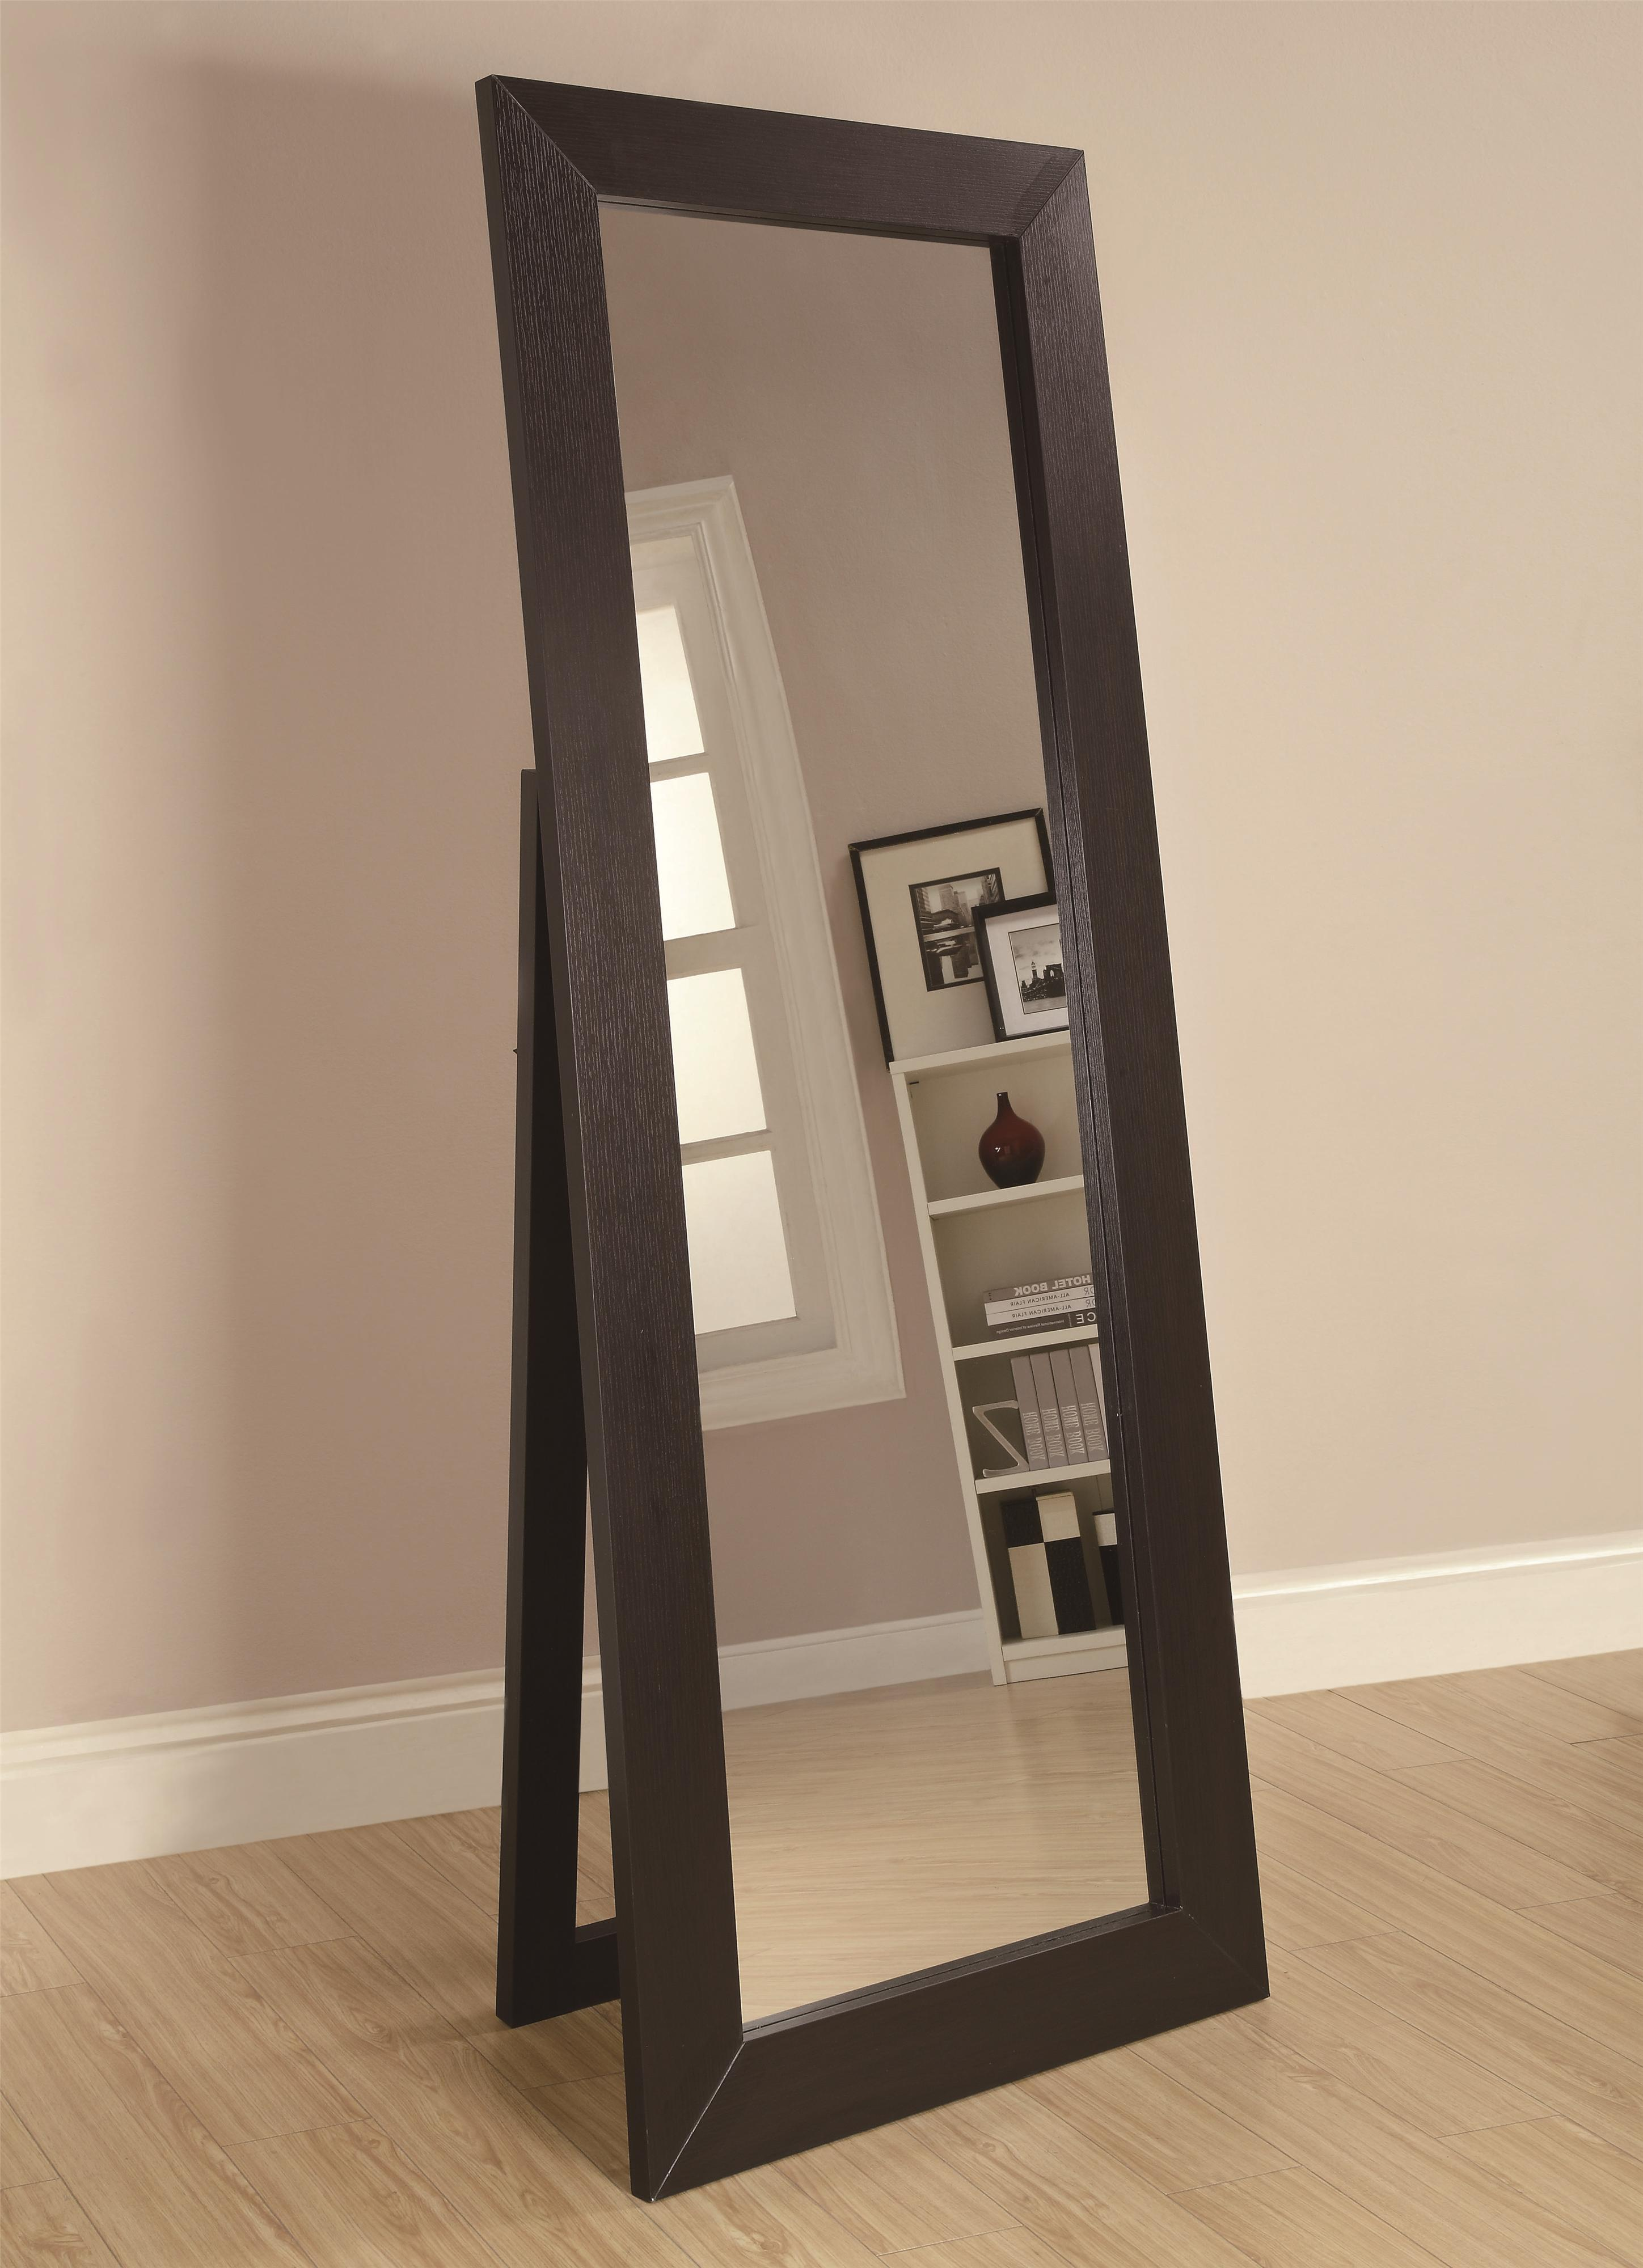 Coaster Accent Mirrors Floor Mirror - Item Number: 900453